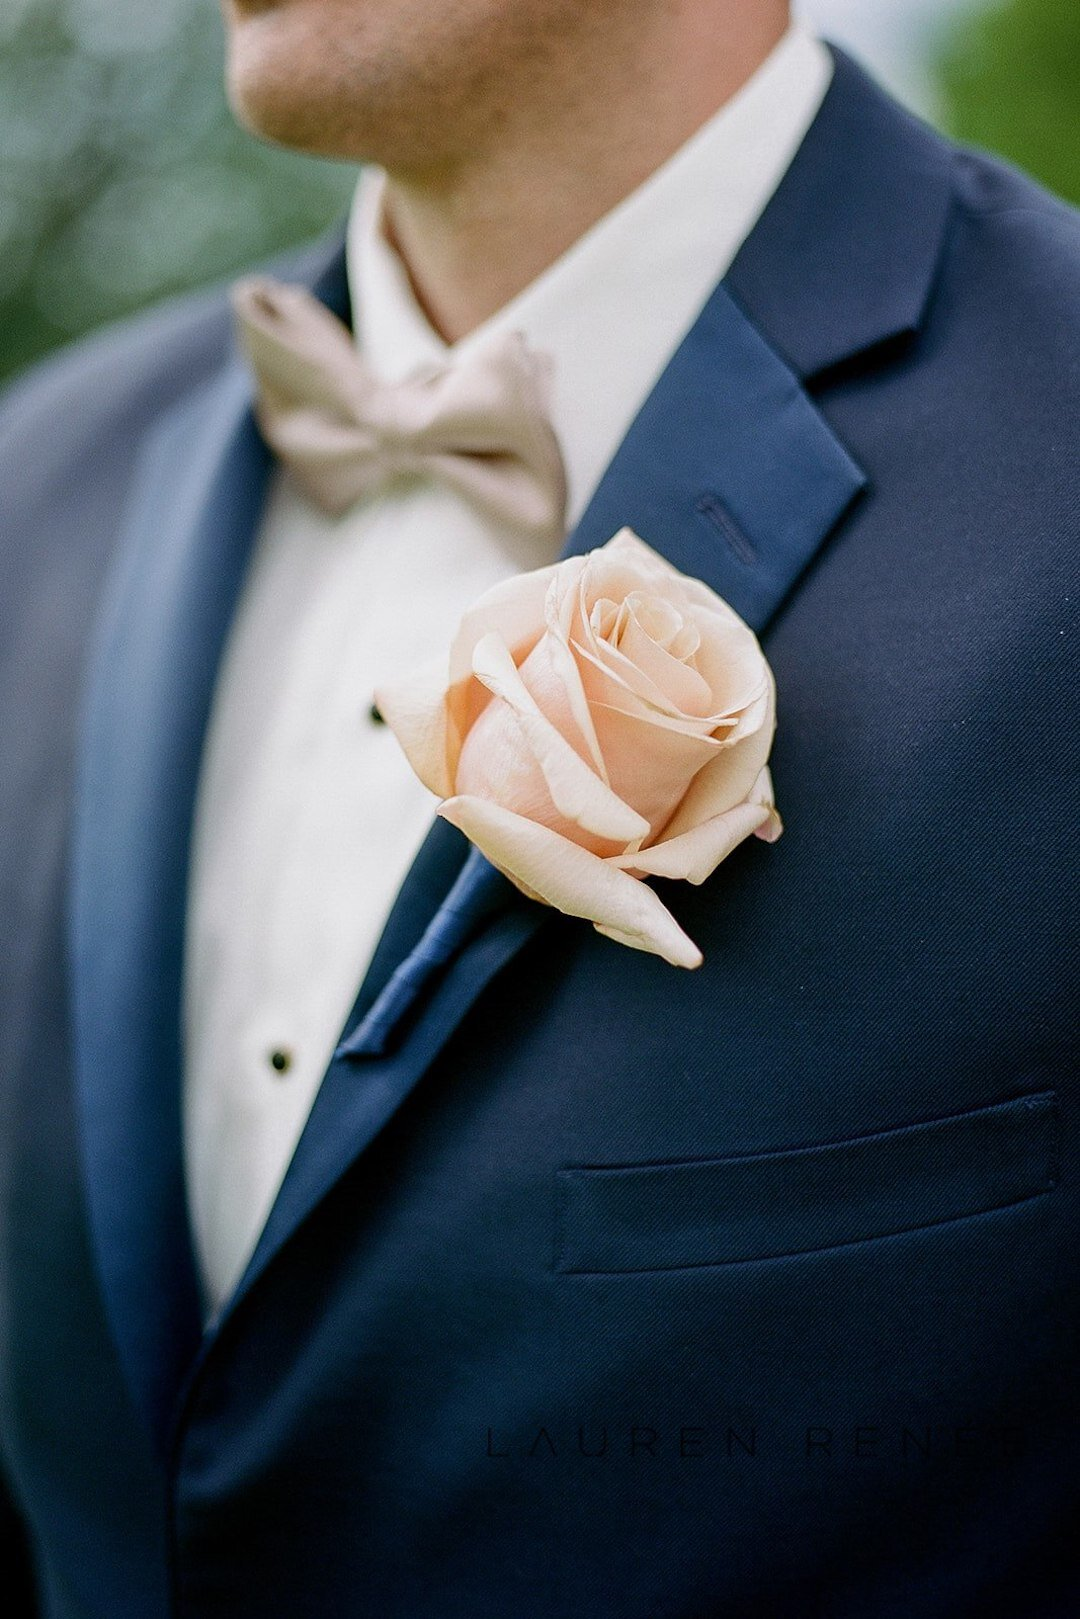 Groom in navy with pink flowers: Romantic Blush Wedding at the Pittsburgh Field Club planned by Exhale Events. See more at exhale-events.com!